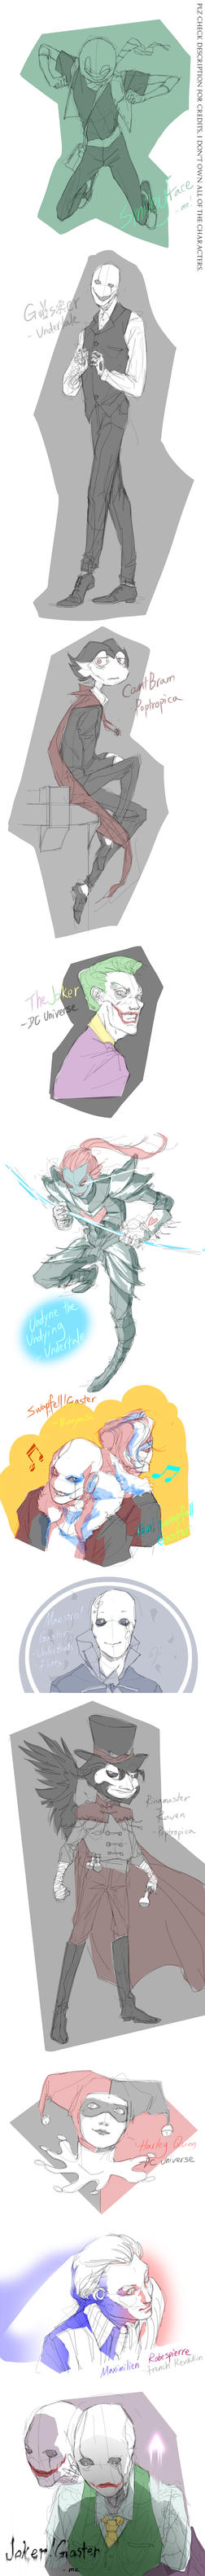 Sketchdump-a mash up of fandoms by SmileyFaceOrg